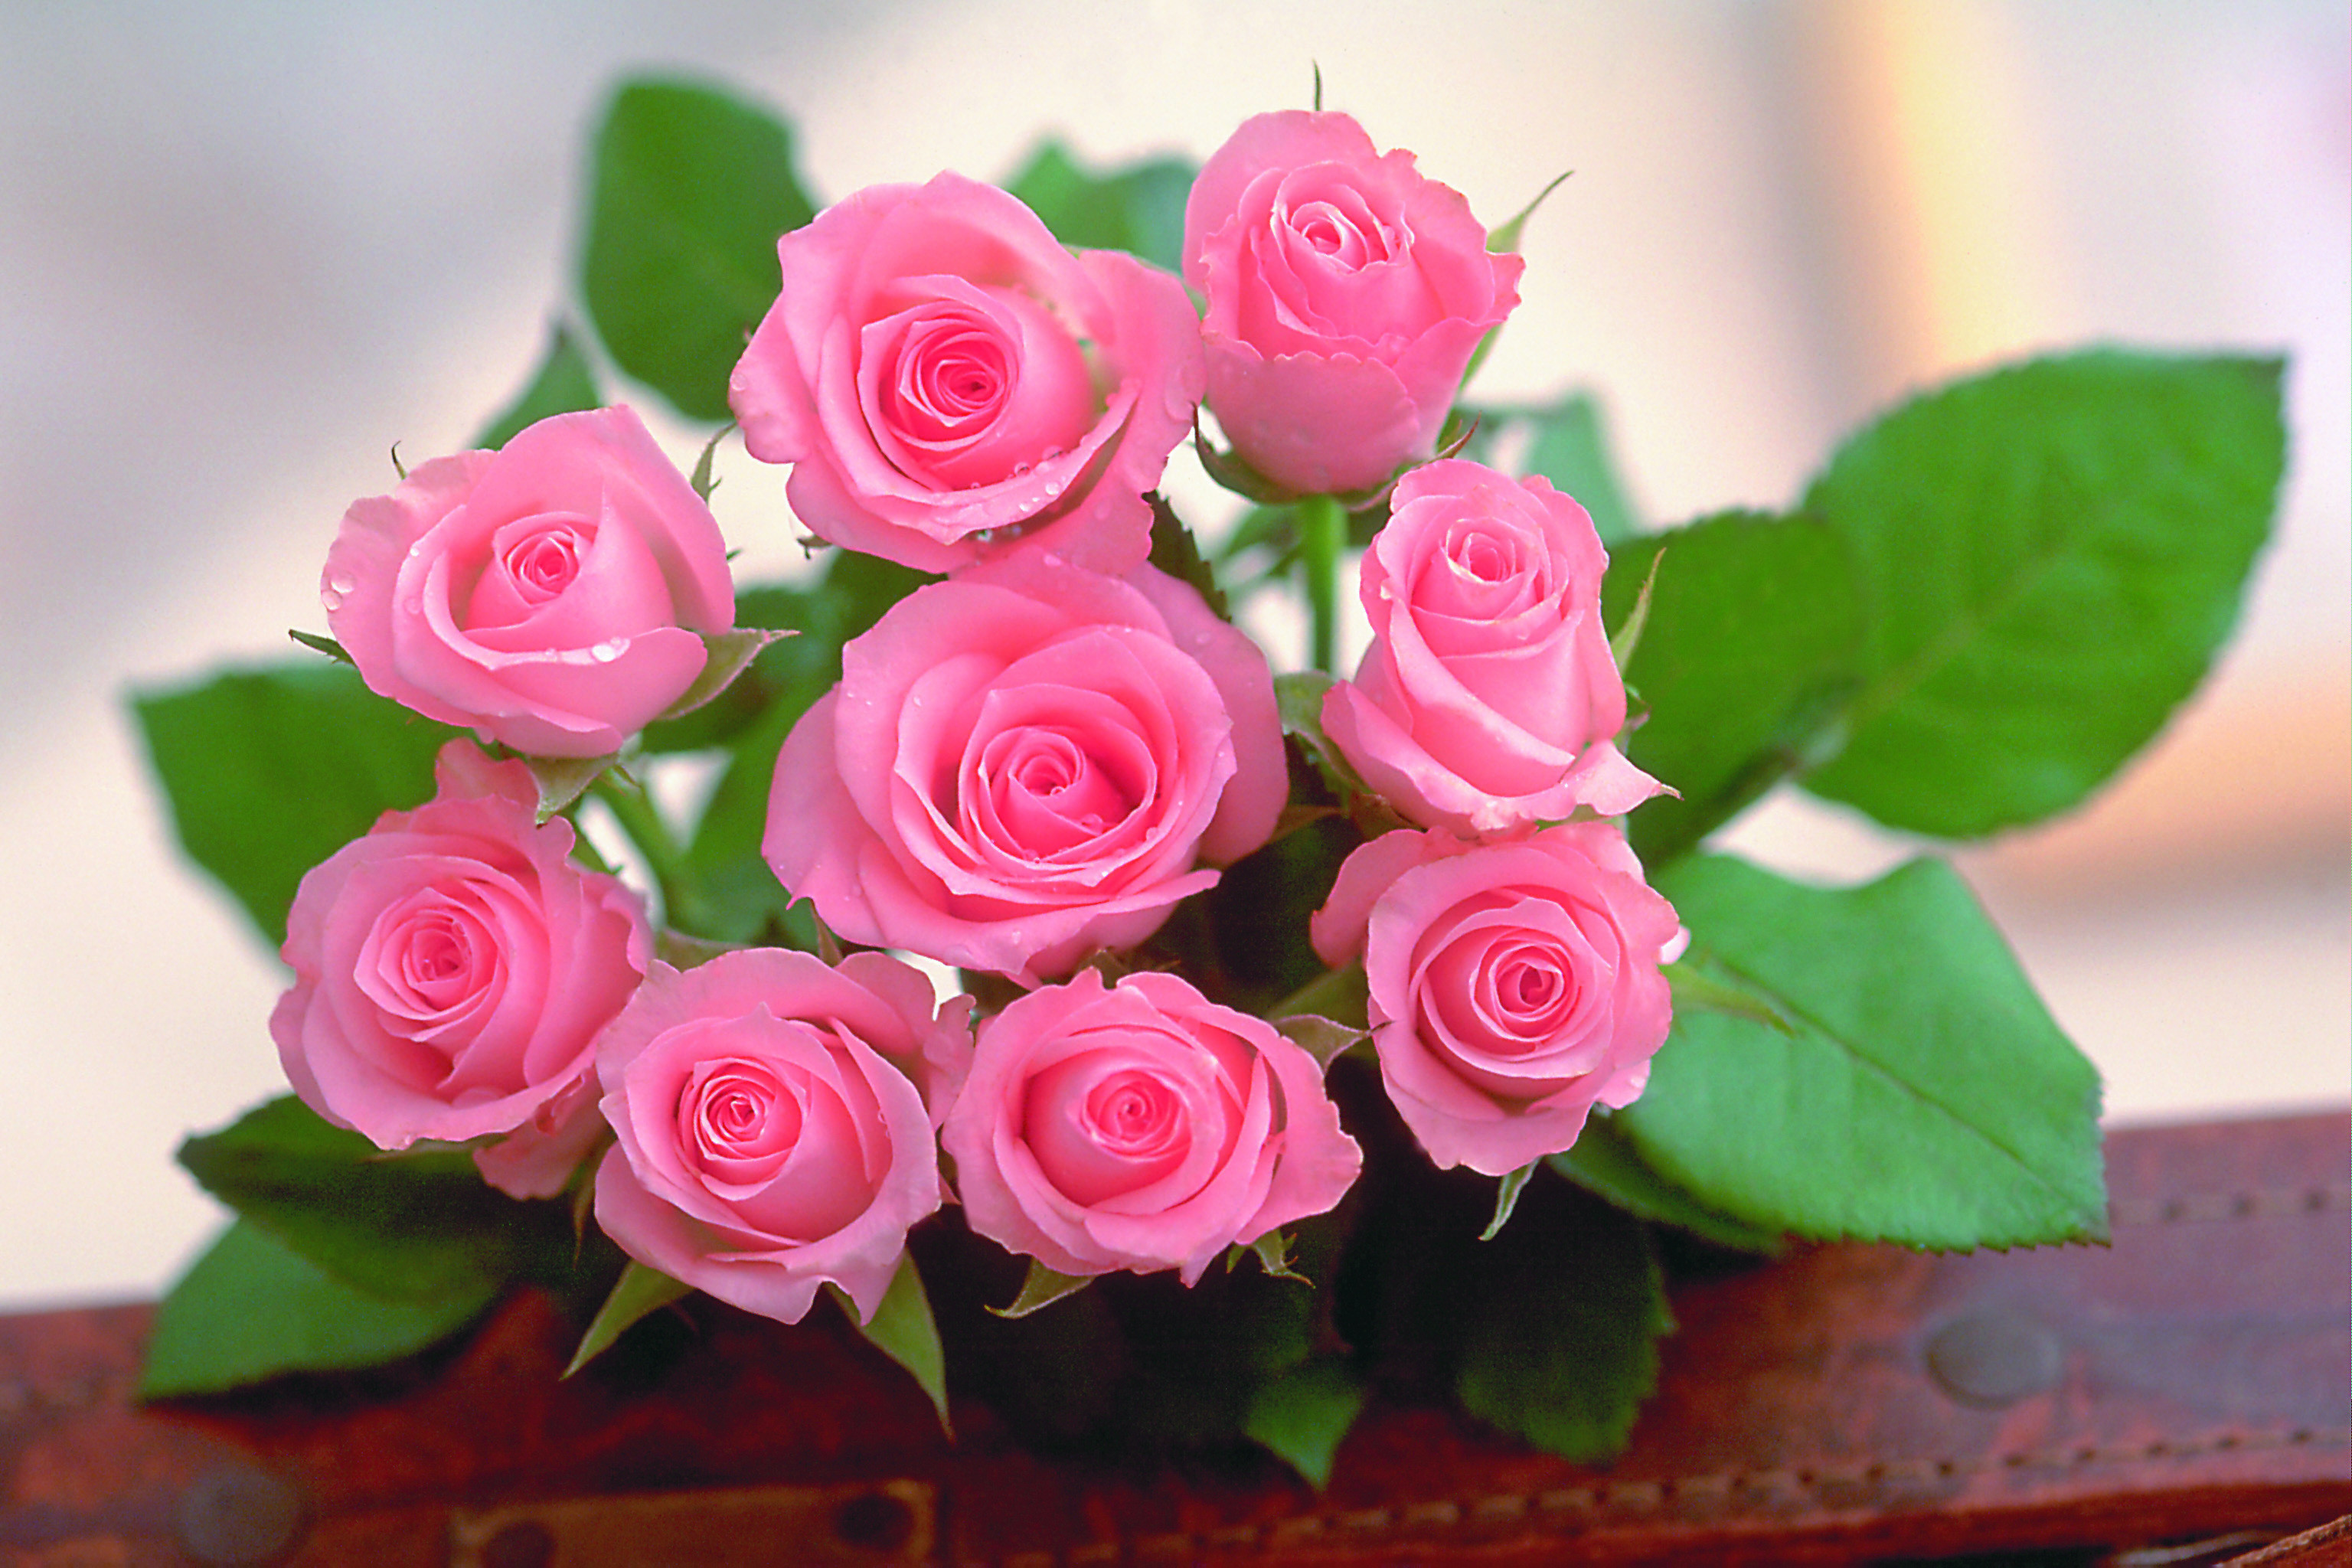 Beautiful rose flowers wallpapers 52 images 1920x1200 beautiful rose flowers wallpaper izmirmasajfo Image collections